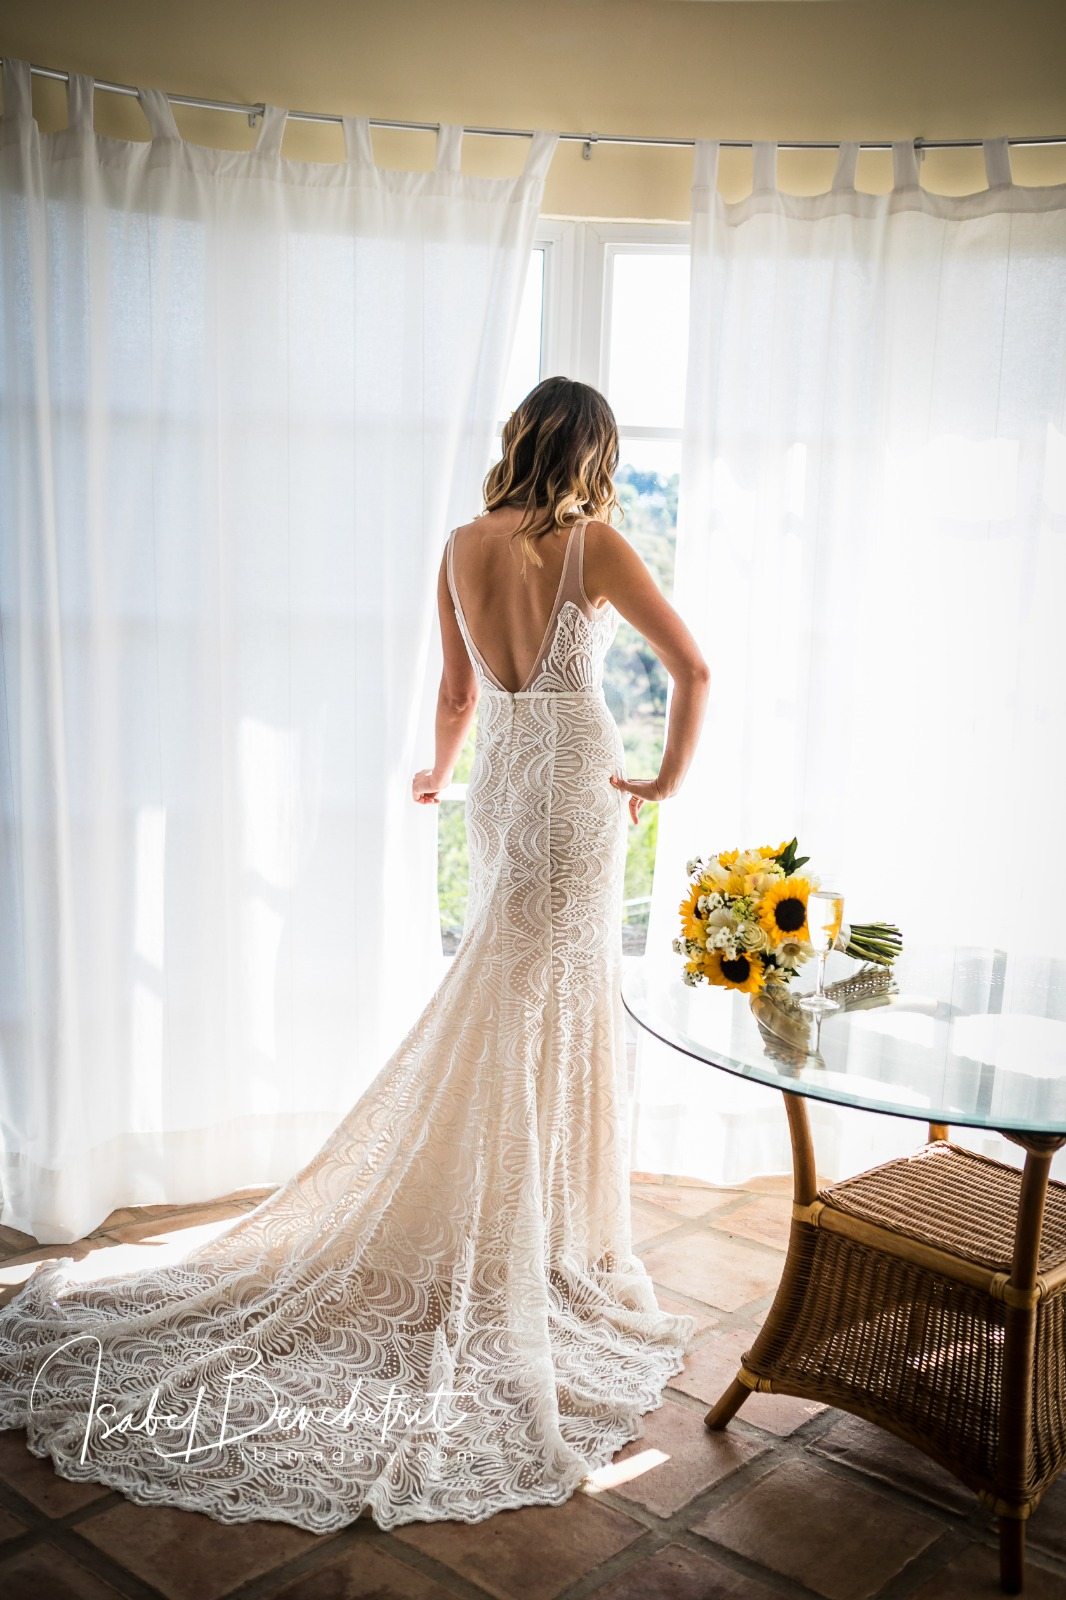 A beautiful bride in her gown